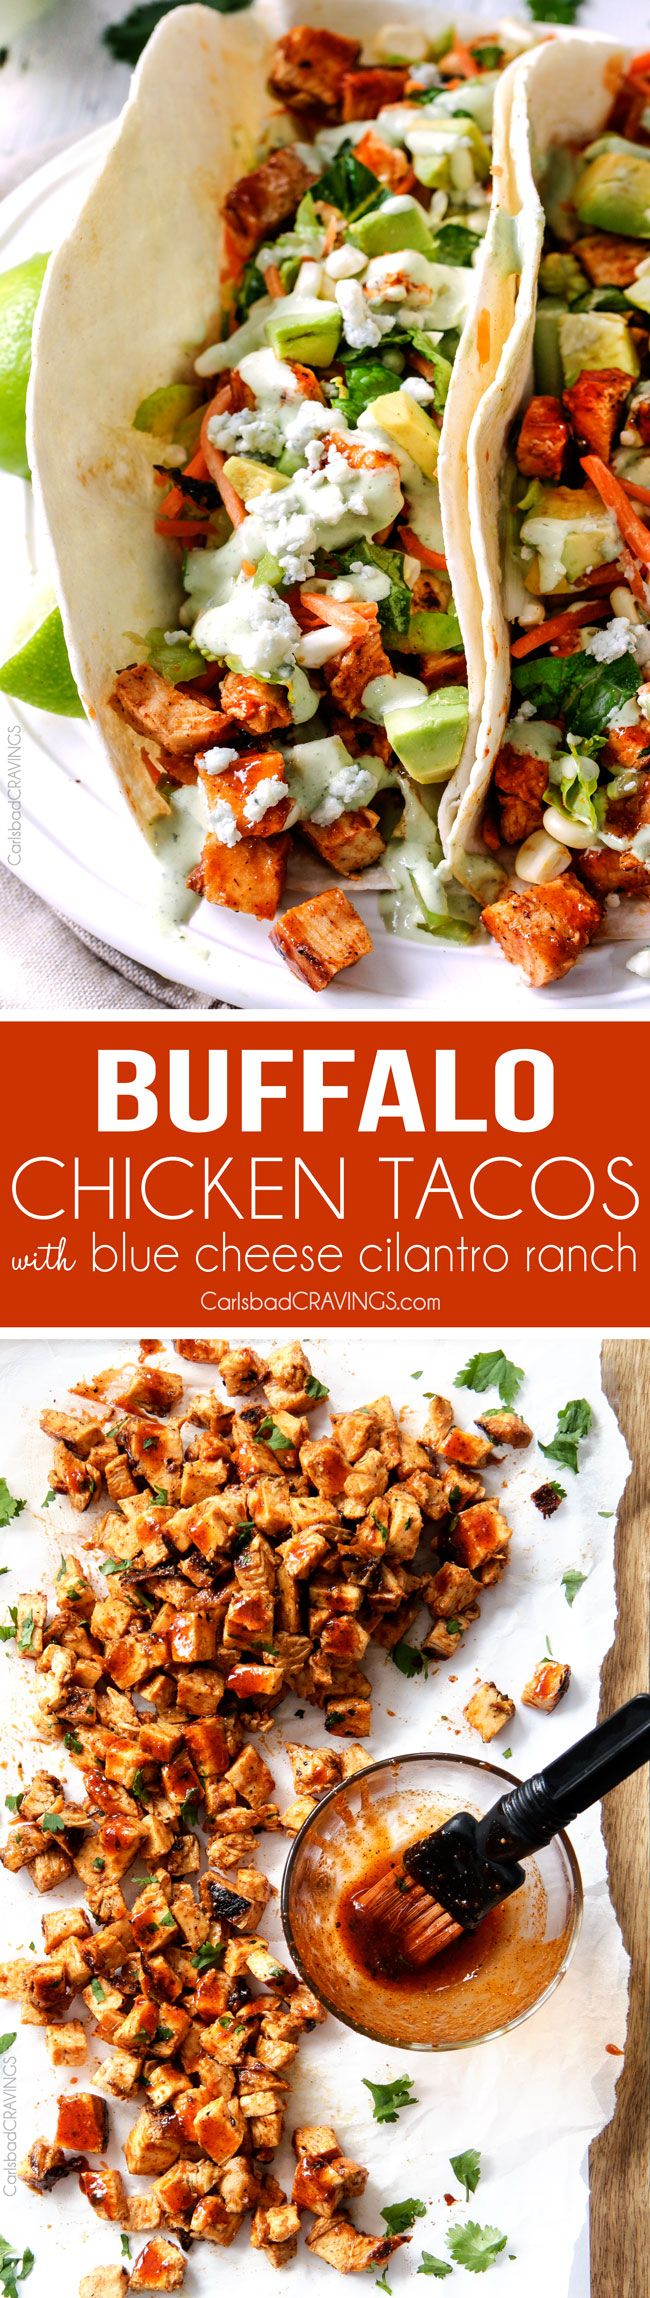 Buffalo Chicken Tacos - Stuffed with the most incredible marinated buffalo chicken and drizzled with to-live-for blue cheese cilantro ranch are ridiculously delicious! Always a crowd pleaser!